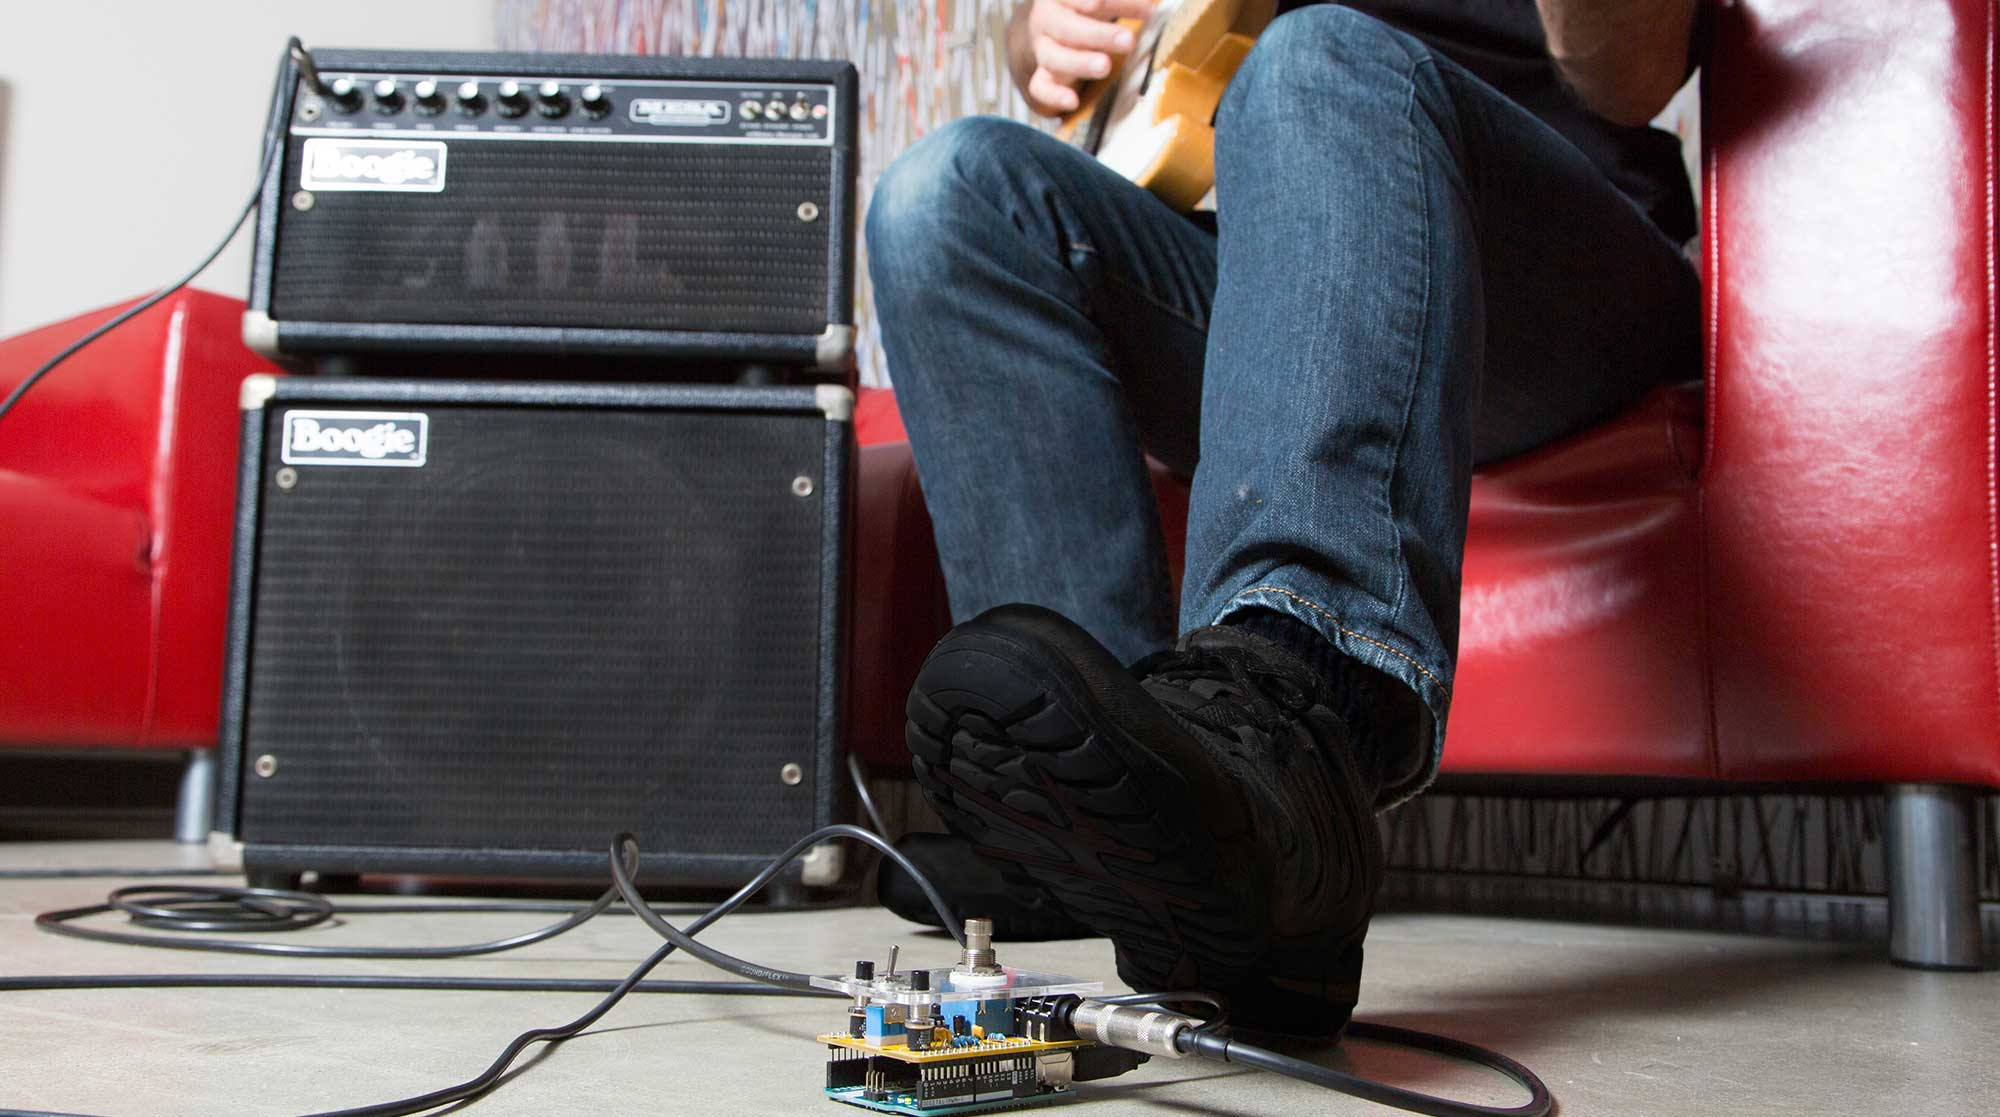 Build An Arduino Guitar Pedal Stompbox Make Making A Simple Diy Mini Amplifier Strat And Other